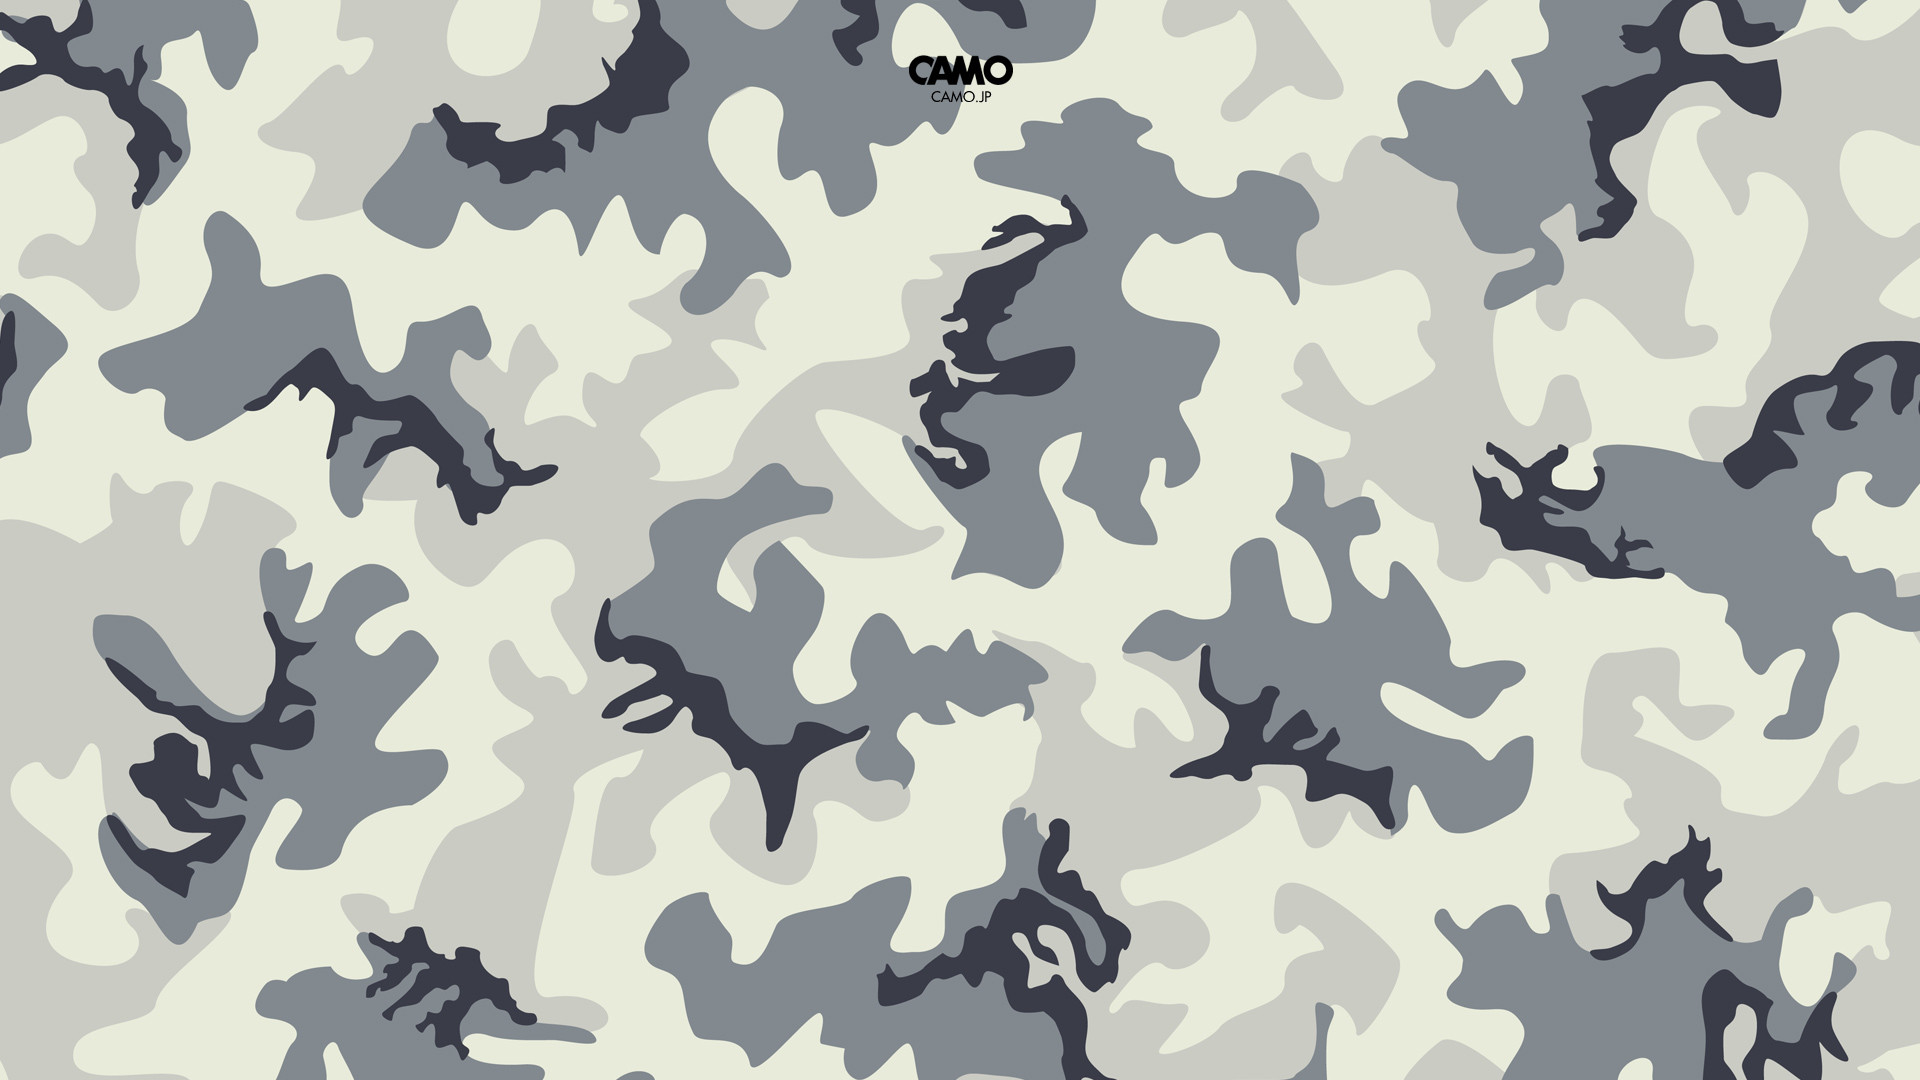 Res: 1920x1080, Bape Iphone Wallpaper Iphone Camo Wallpaper